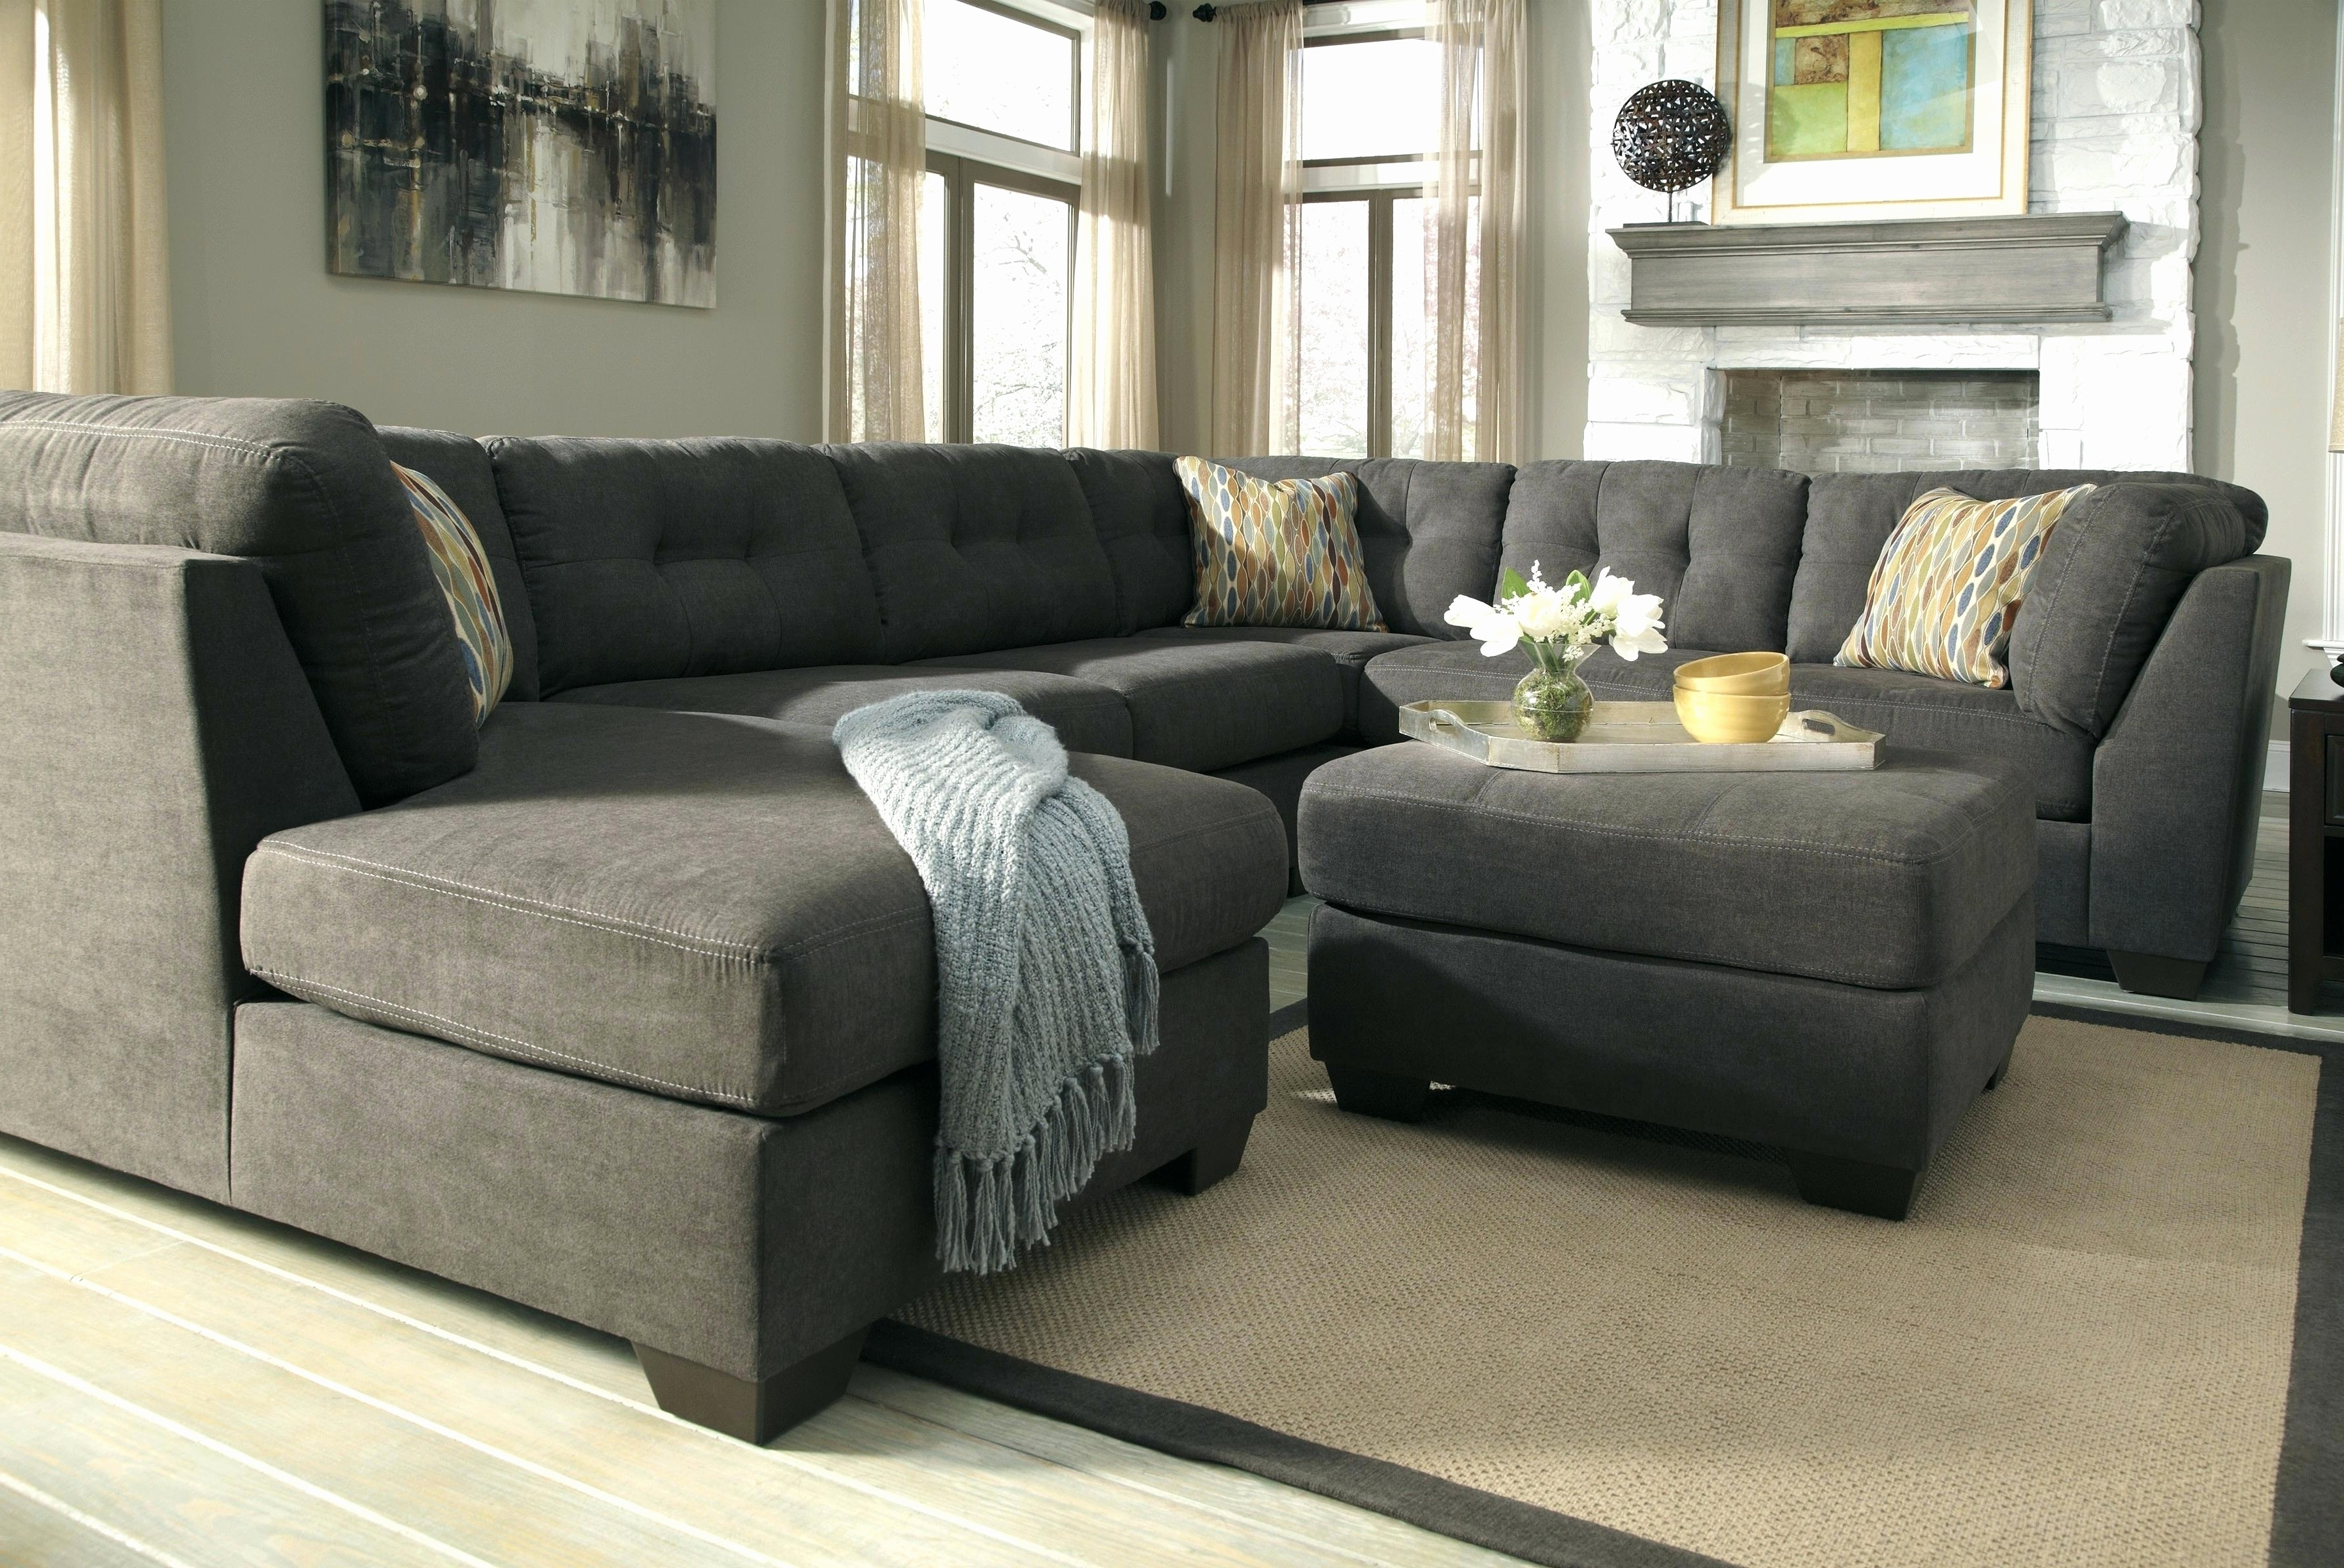 Elegant Sectional Sofas Throughout Most Popular Elegant U Shaped Sectional Sofa 2018 – Couches And Sofas Ideas (Gallery 16 of 20)